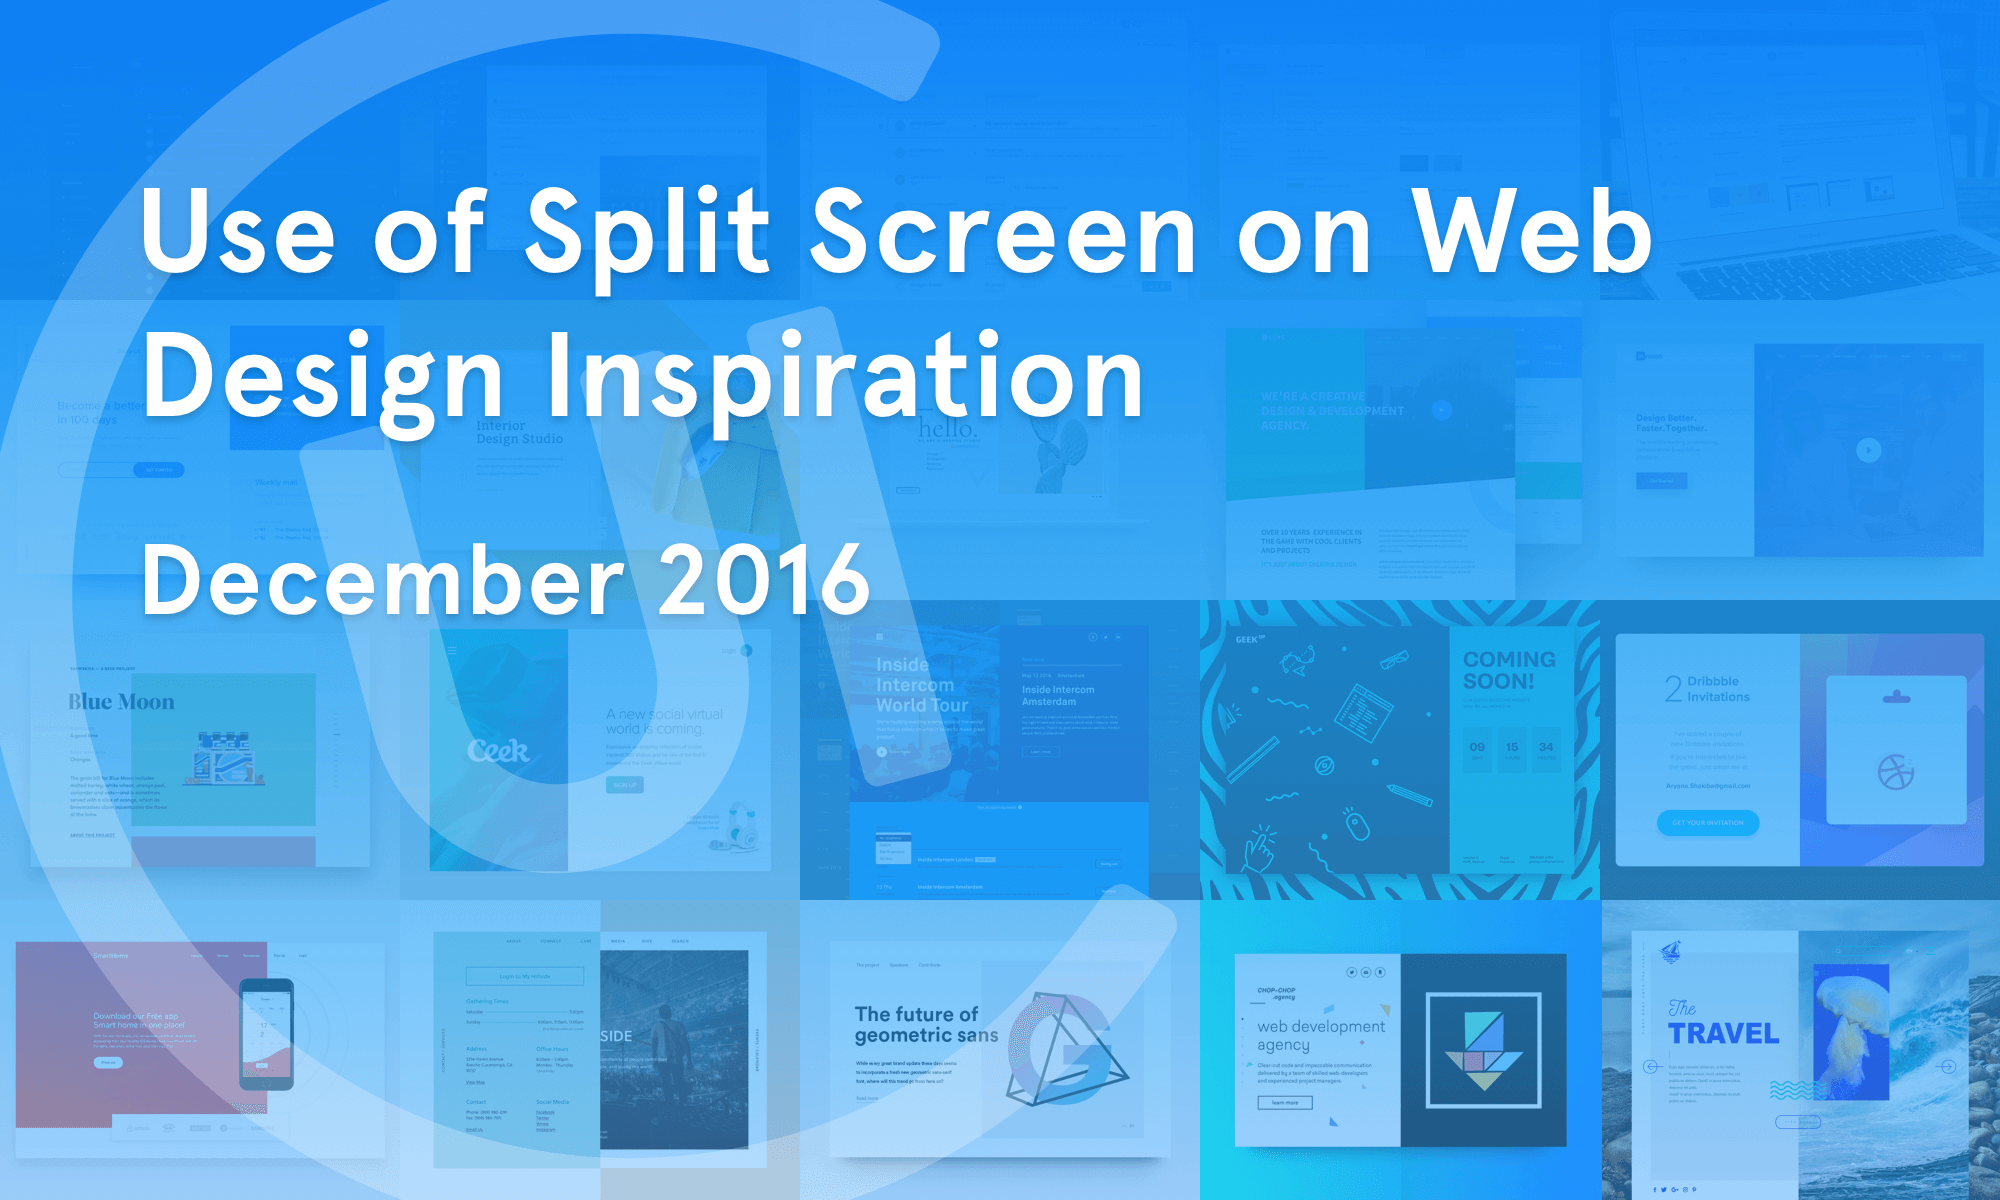 Use of Split Screen on Web Design Inspiration — December 2016